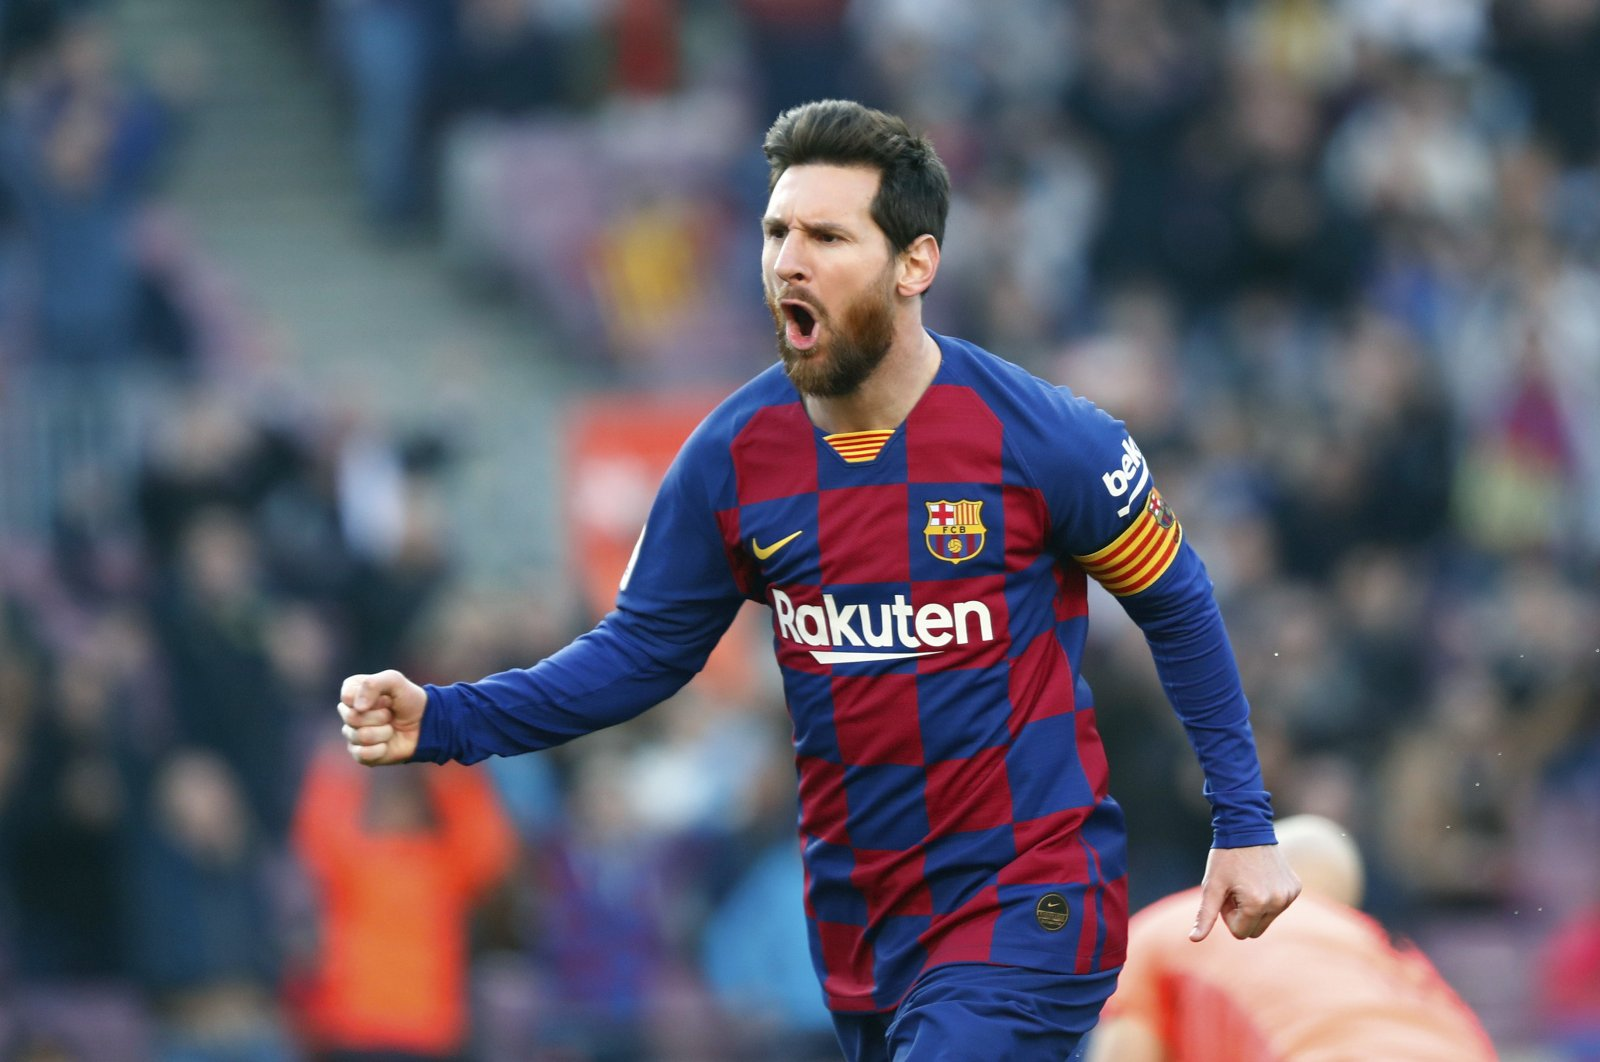 In this Saturday, Feb. 22, 2020 file photo, Barcelona's Lionel Messi celebrates after scoring his side's opening goal during a Spanish La Liga soccer match between Barcelona and Eibar at the Camp Nou stadium in Barcelona, Spain. Spanish Prime Minister Pedro Sánchez announced Saturday, May 23, 2020 that the soccer league in Spain will be allowed to resume from June 8. (AP Photo/Joan Monfort, File)